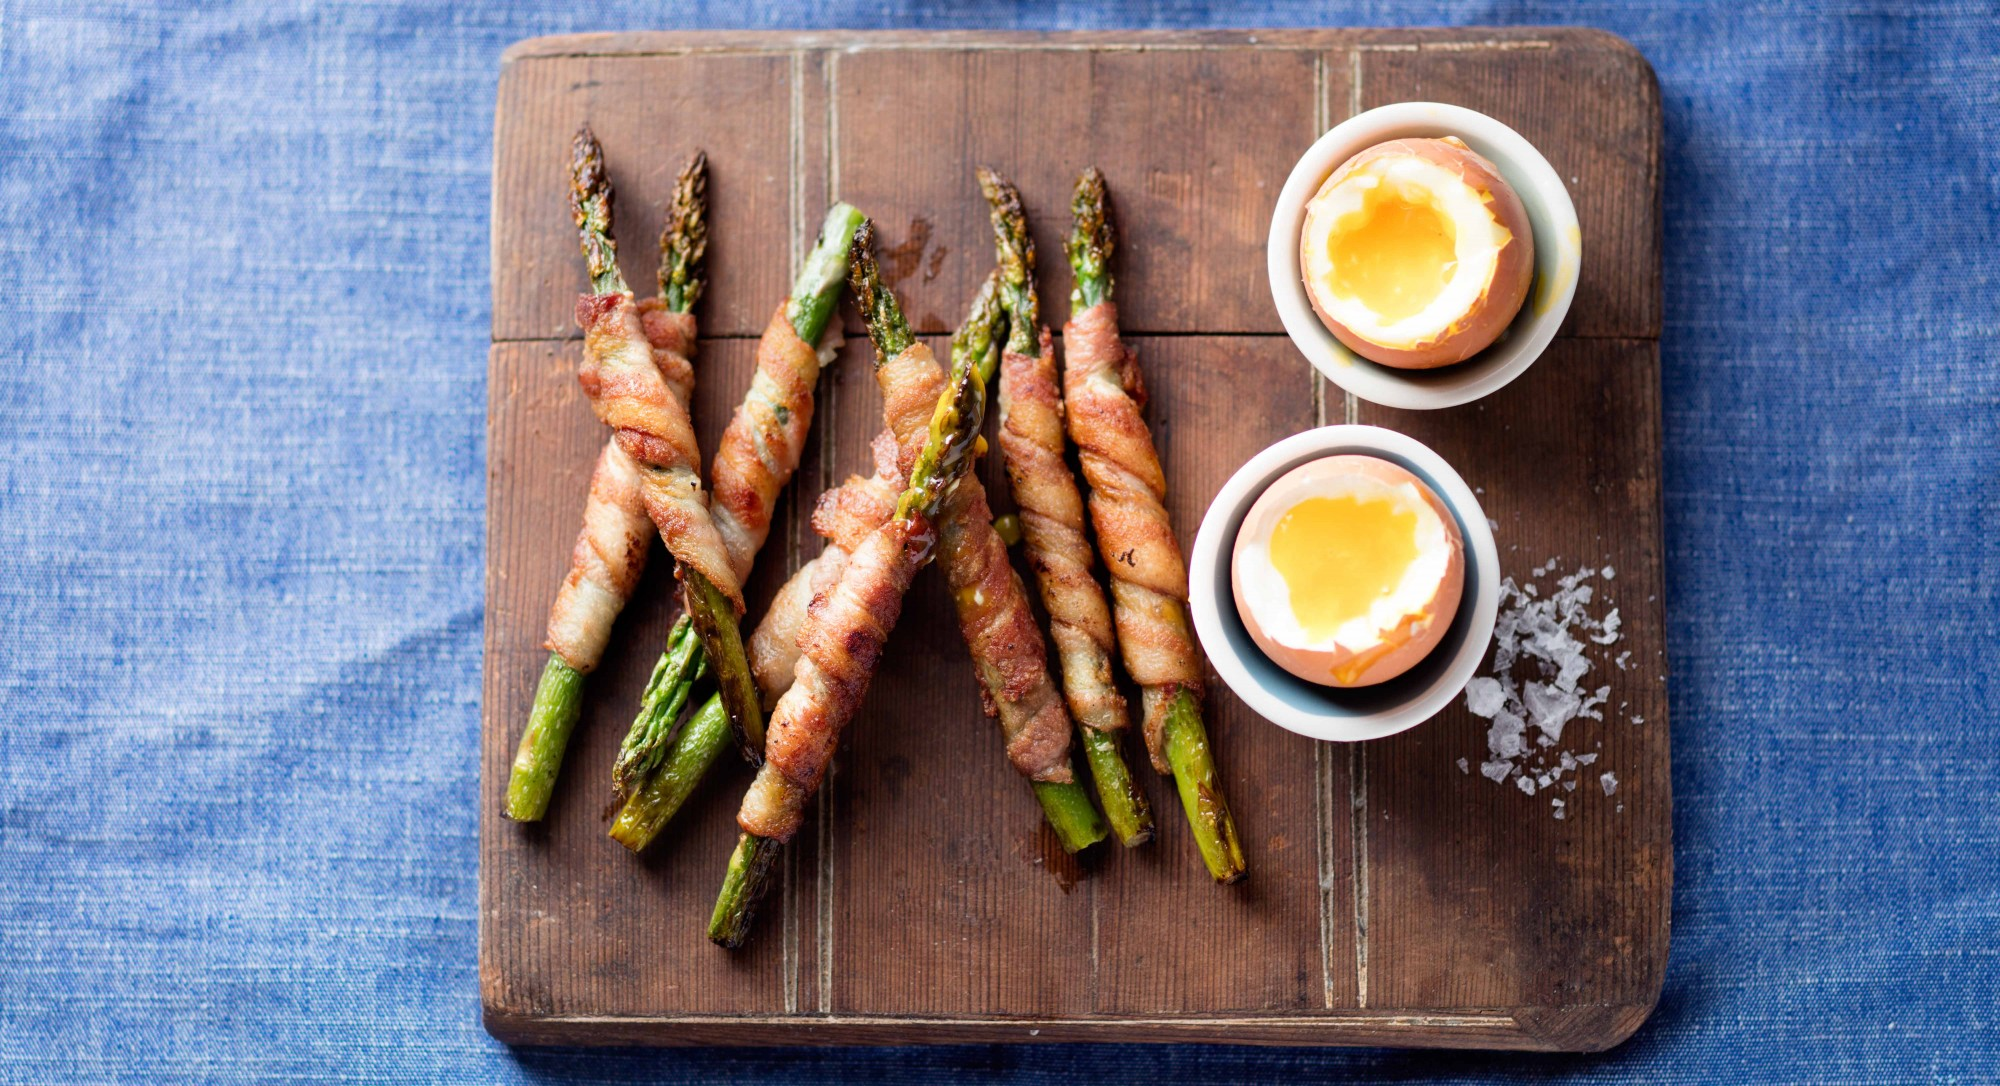 Boiled Eggs With Bacon-Wrapped Asparagus Soldiers Recipe